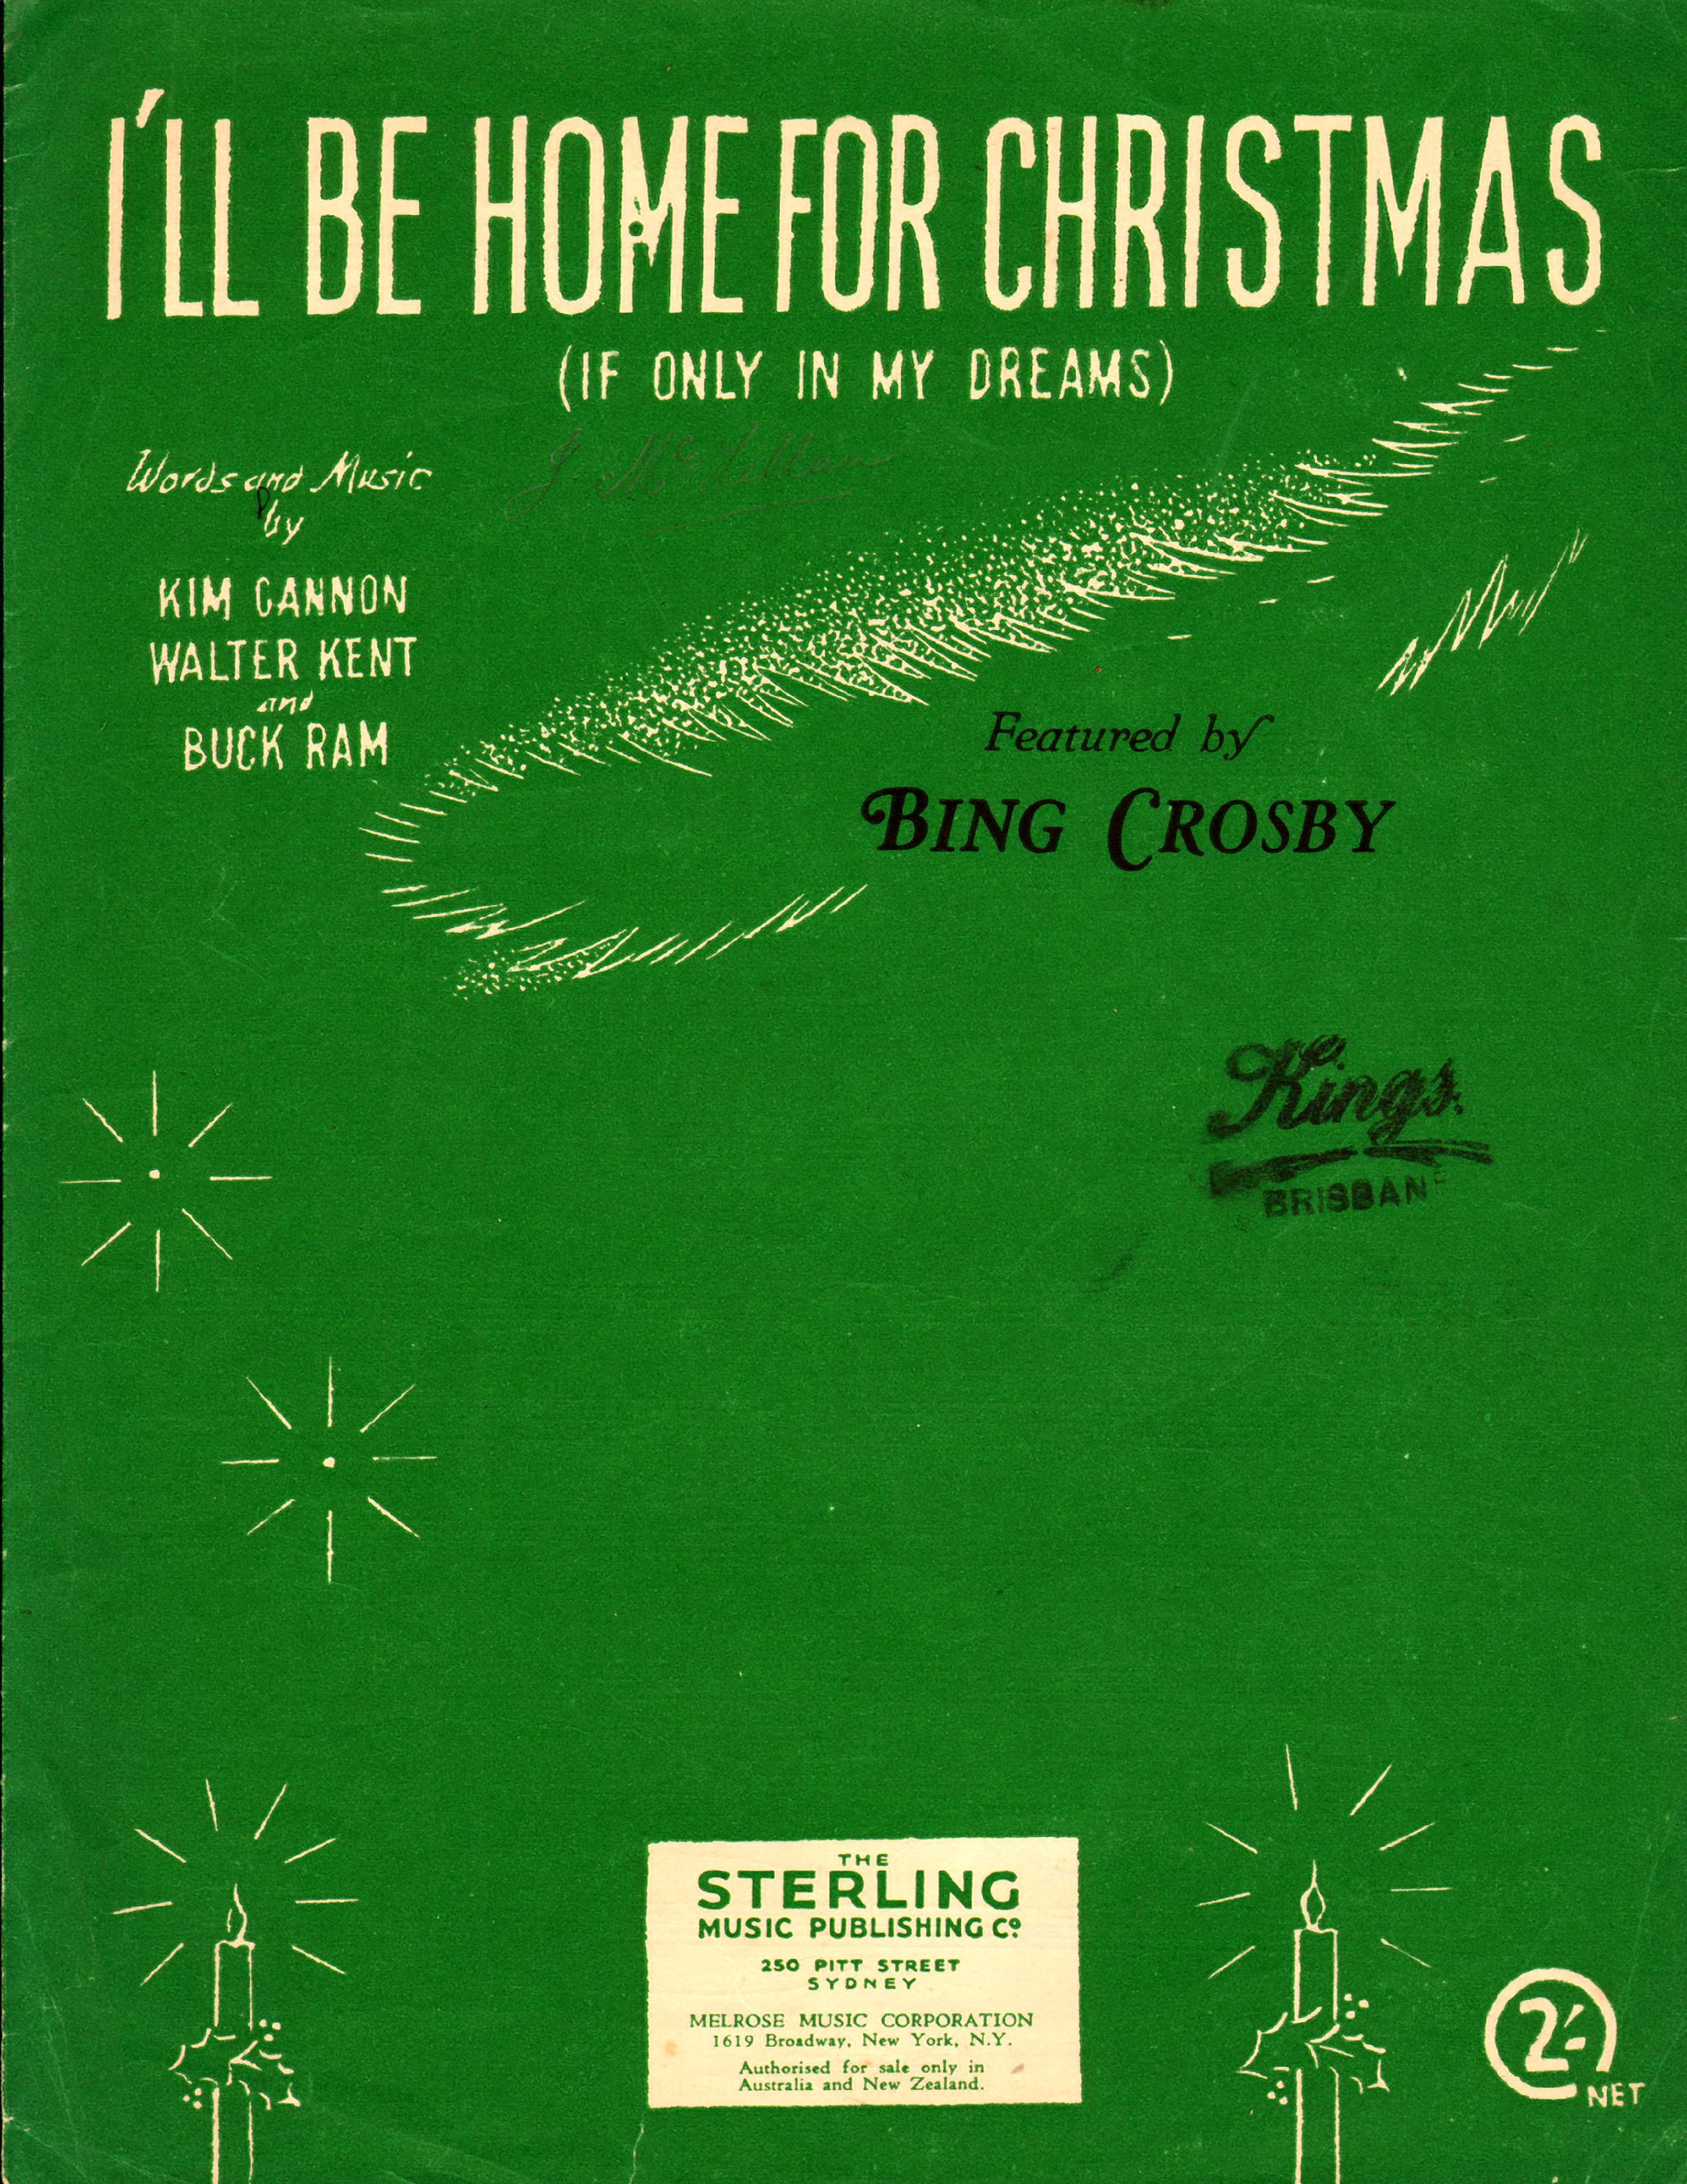 ill be home for christmas 1943 words and music by kim cannon - I Ll Be Home For Christmas Bing Crosby